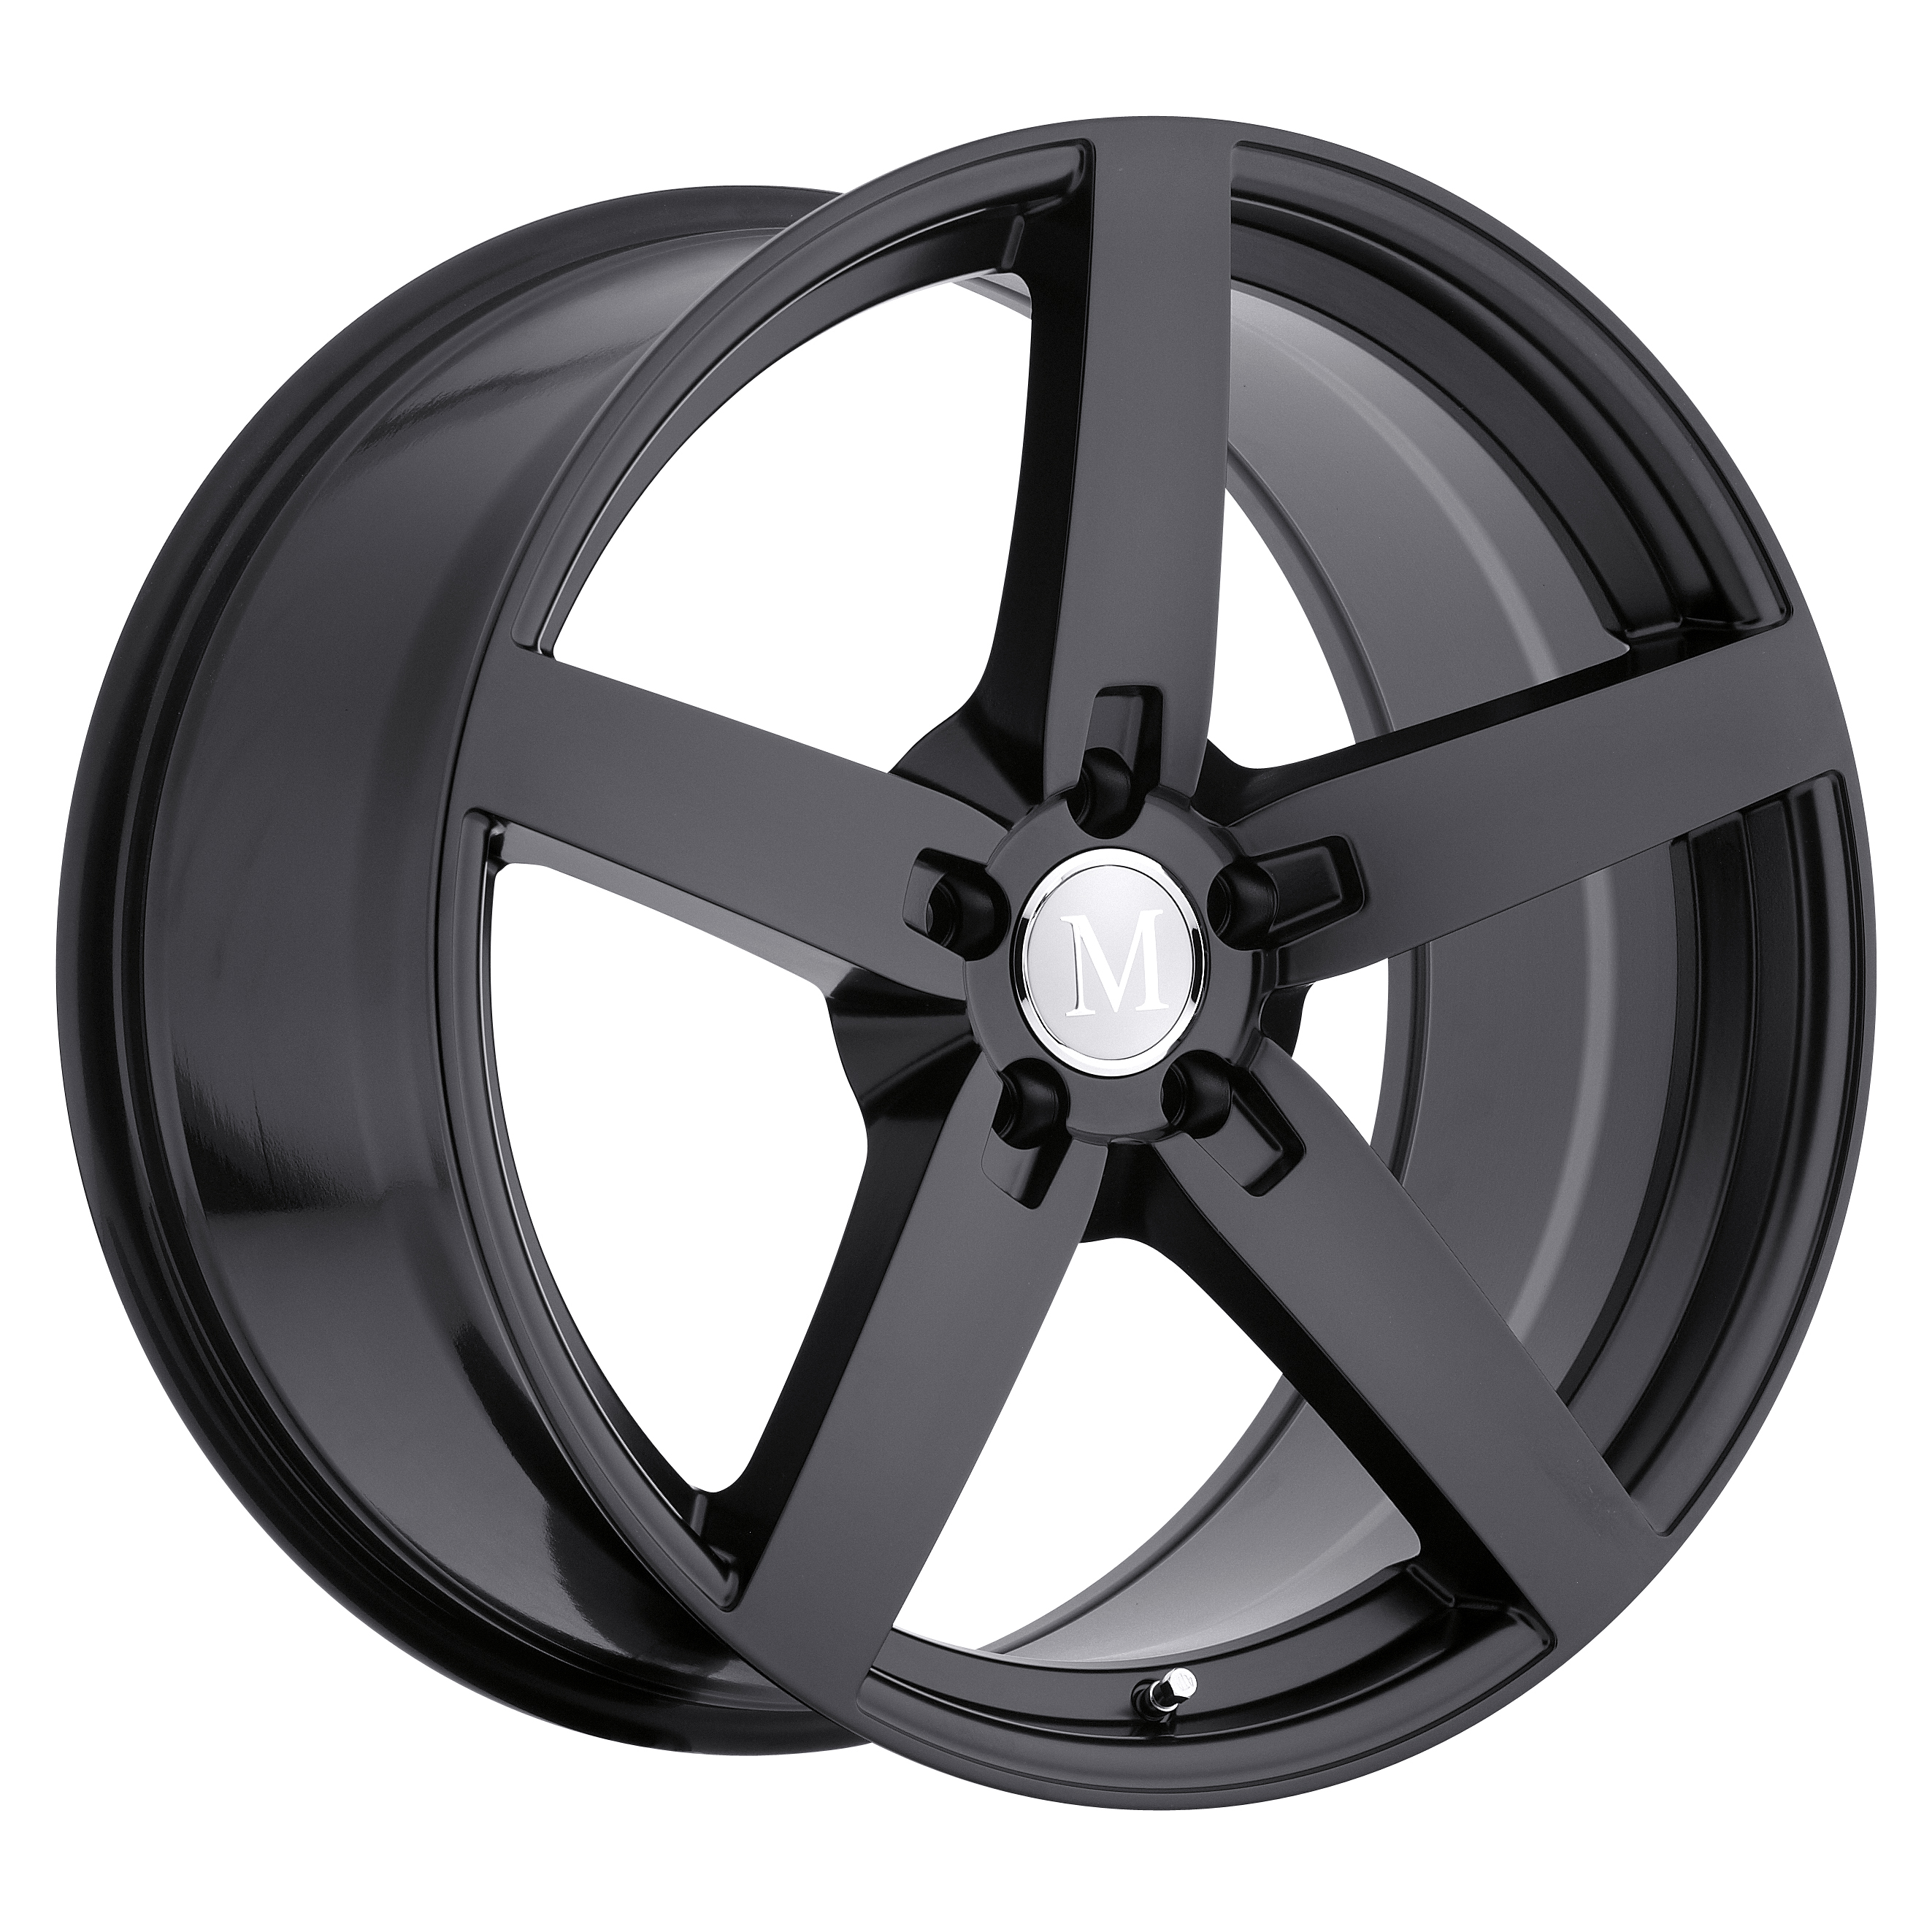 Muscle car wheels rims - photo#37